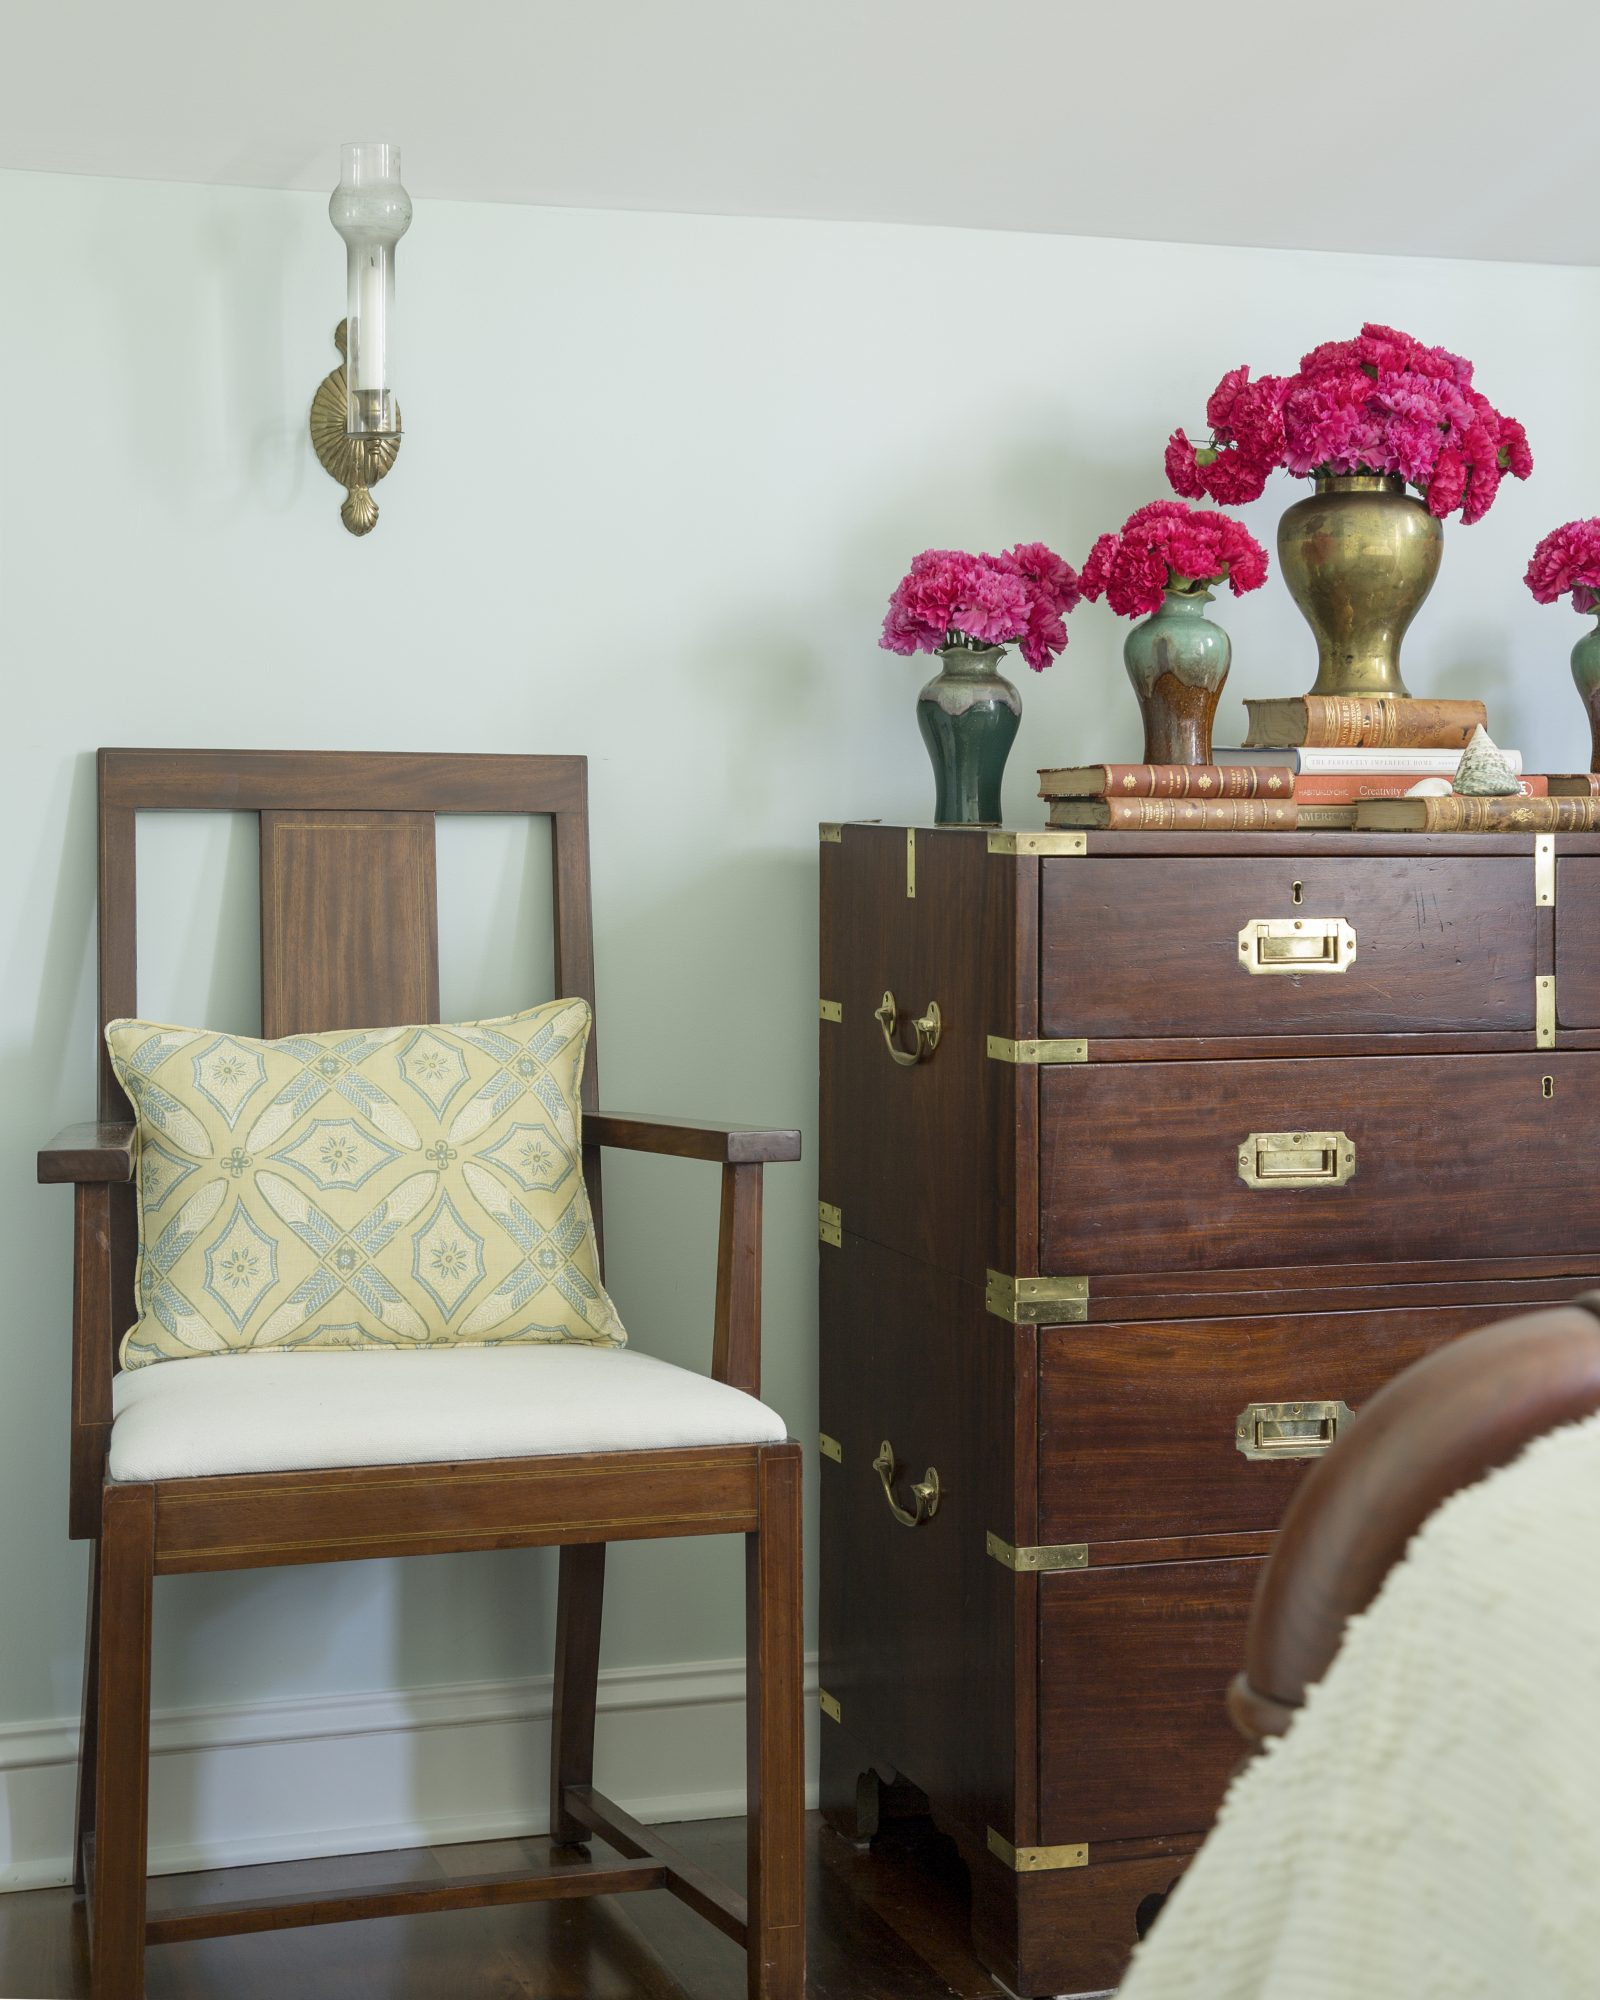 Decorative Accents in the Queen Guestroom